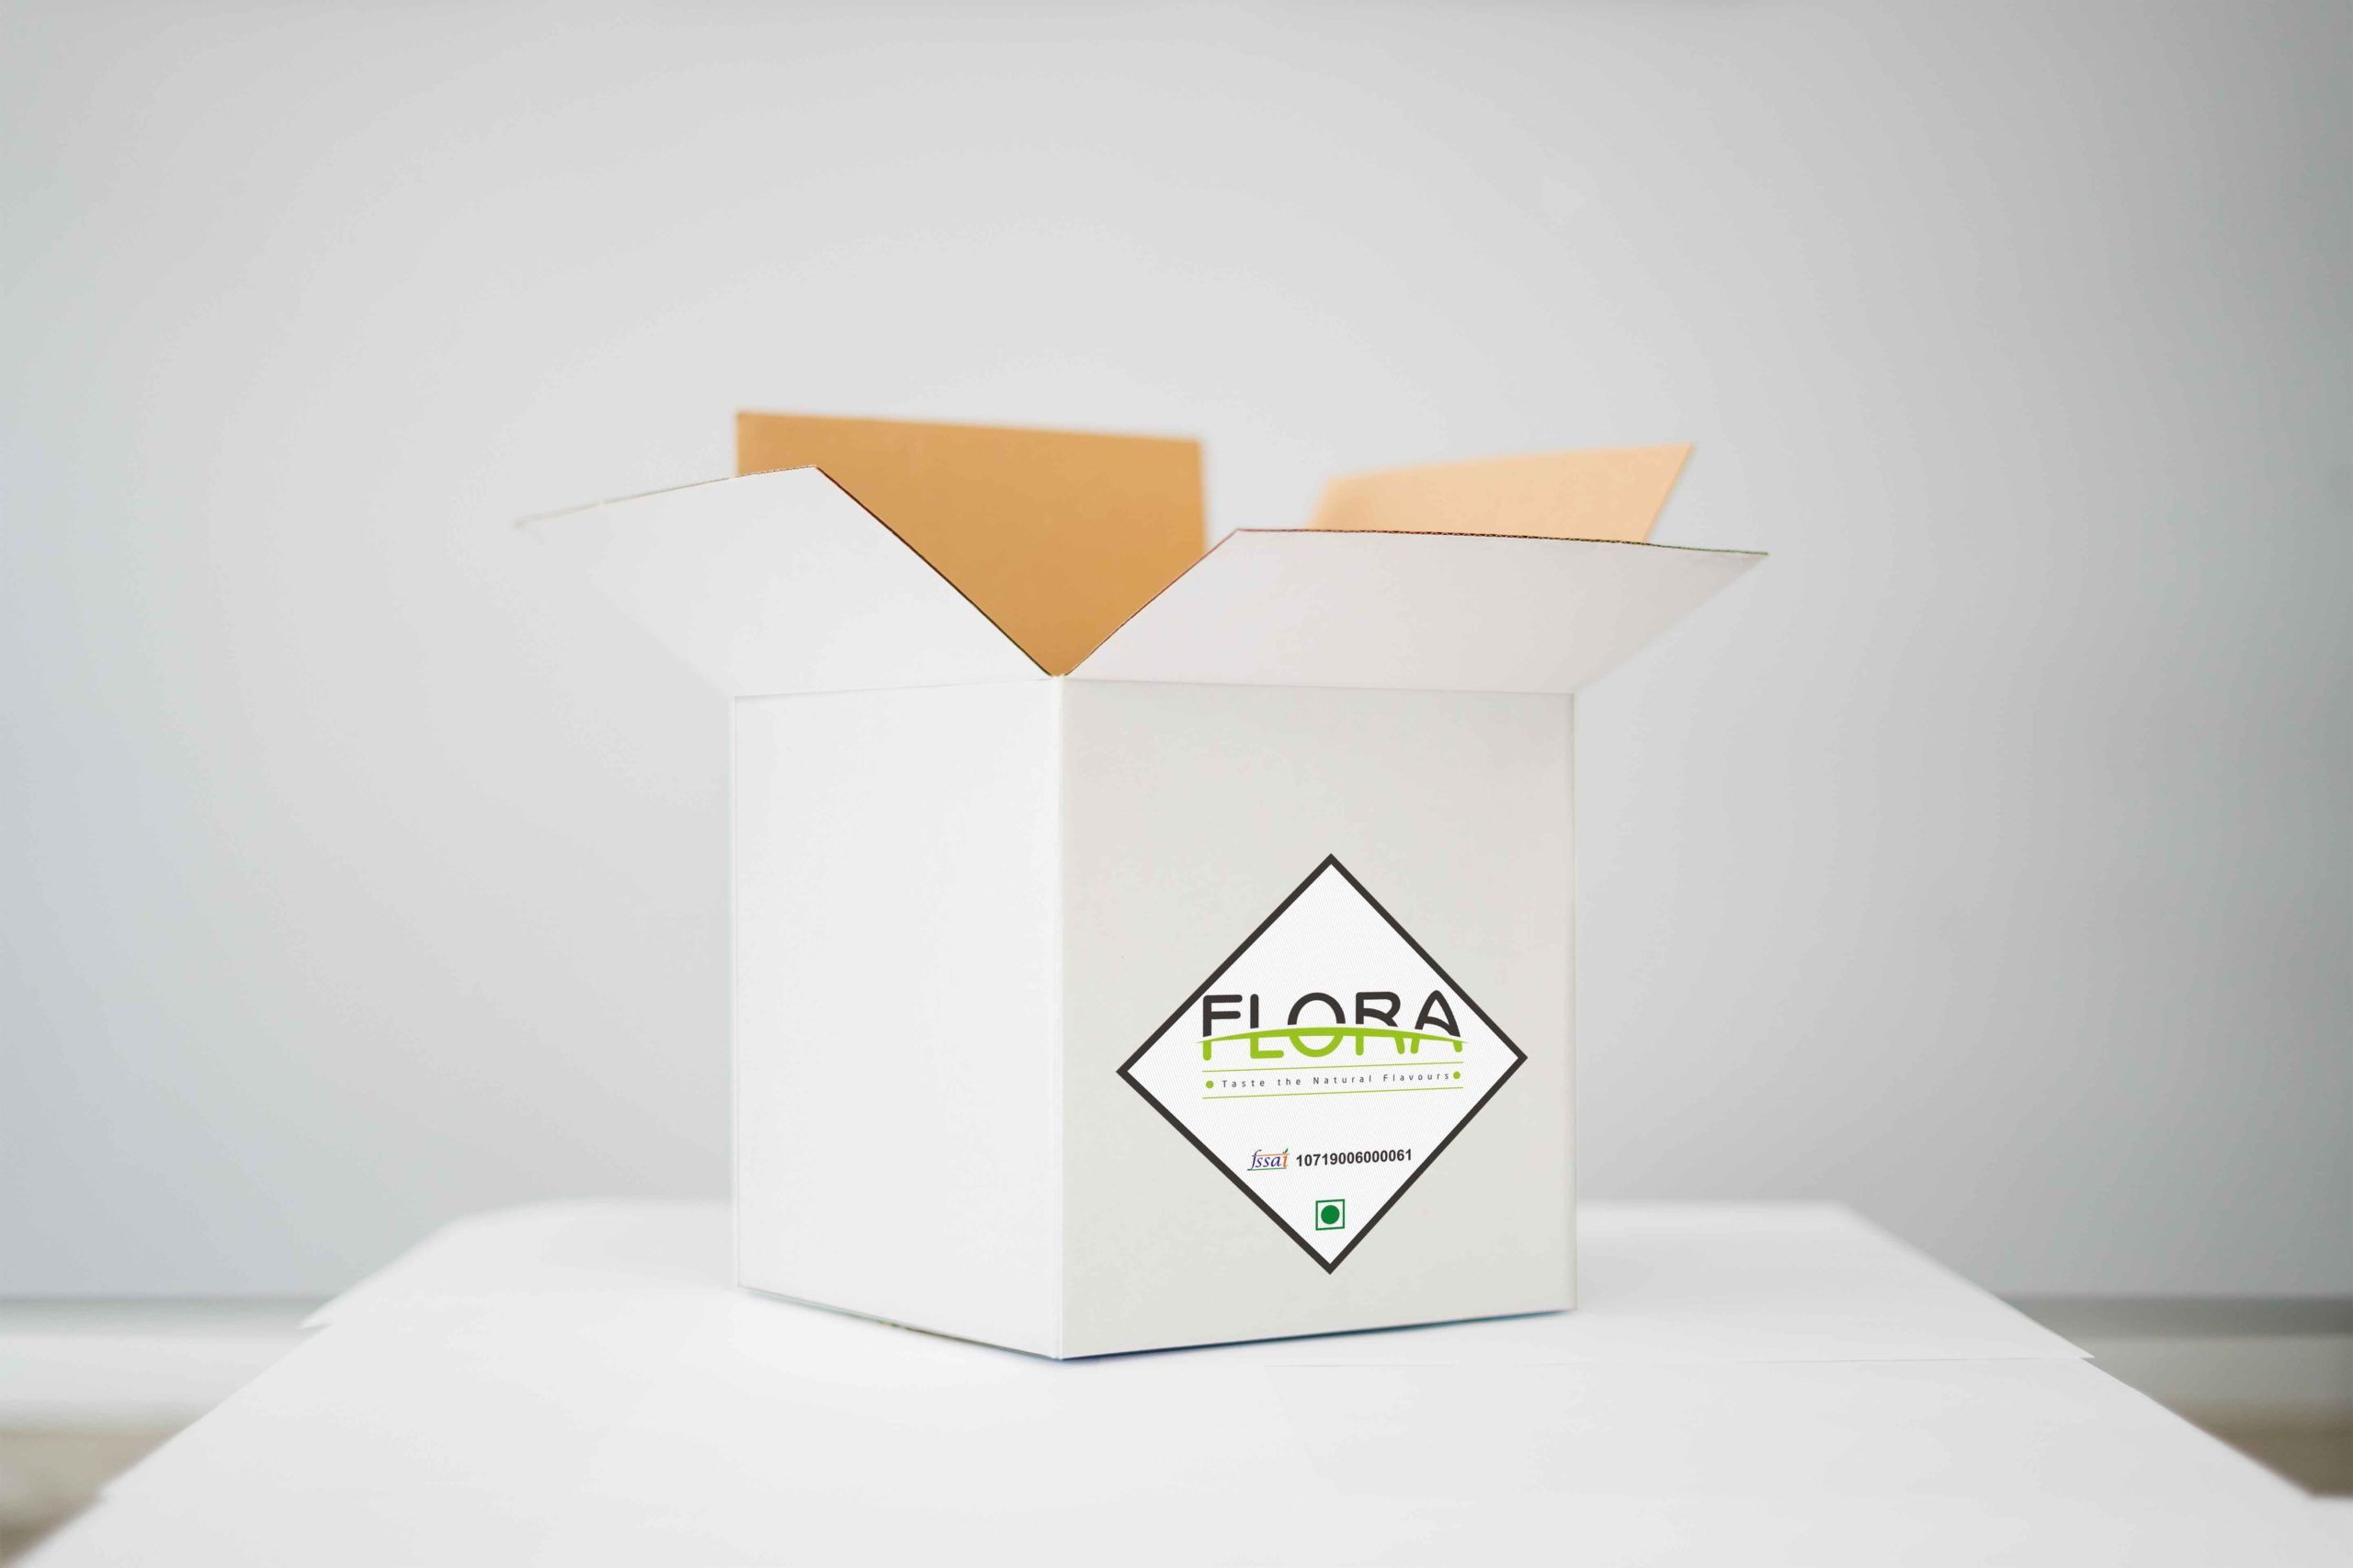 Food company flora sticker design by Badri Design